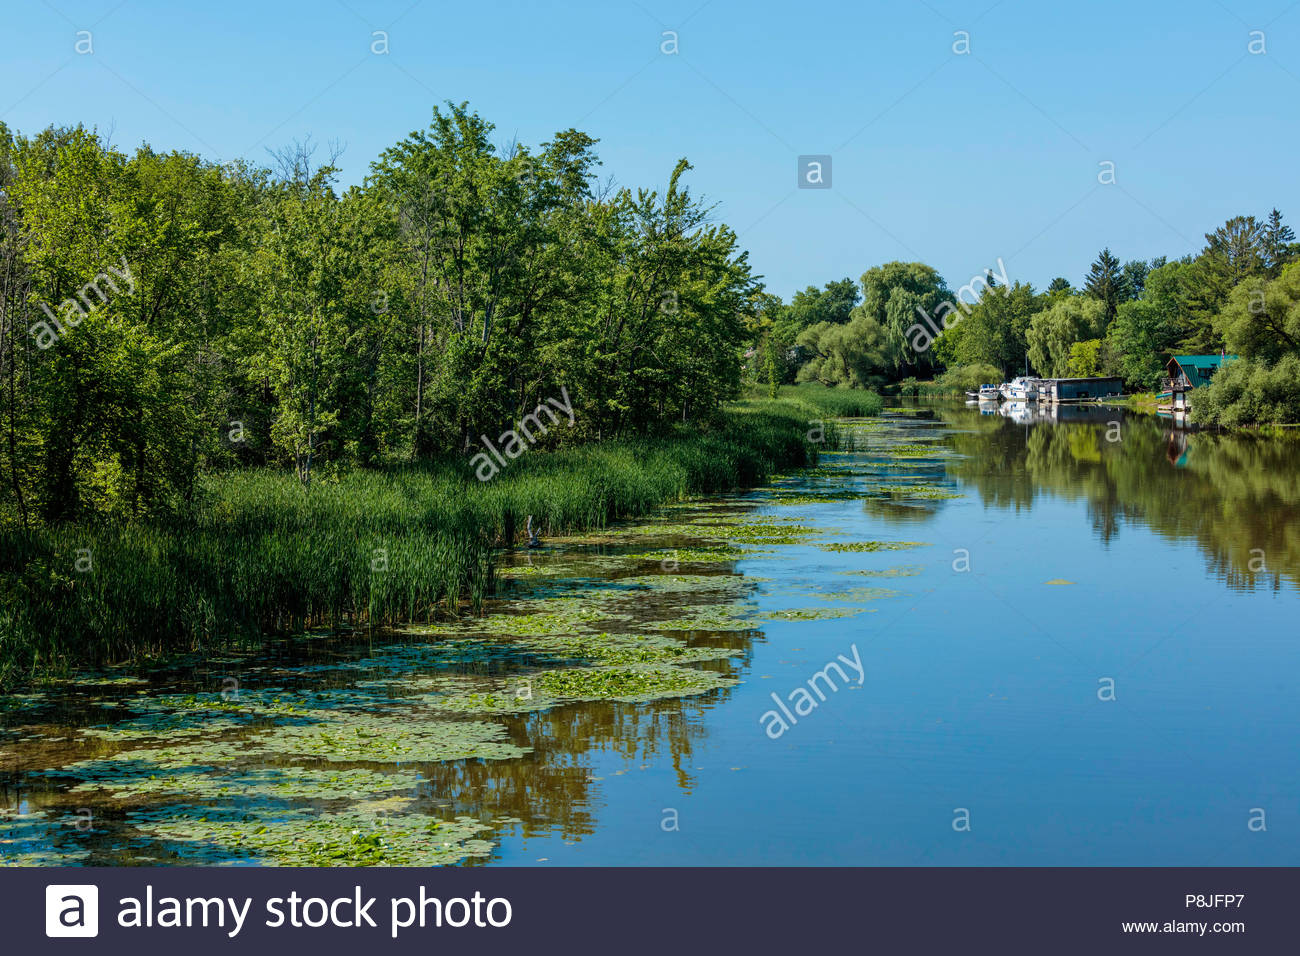 Homes with boats on river in polder reclaimed marsh near Lake Simcoe and Bradford Ontario Canada Holland Marsh East Holland River - Stock Image